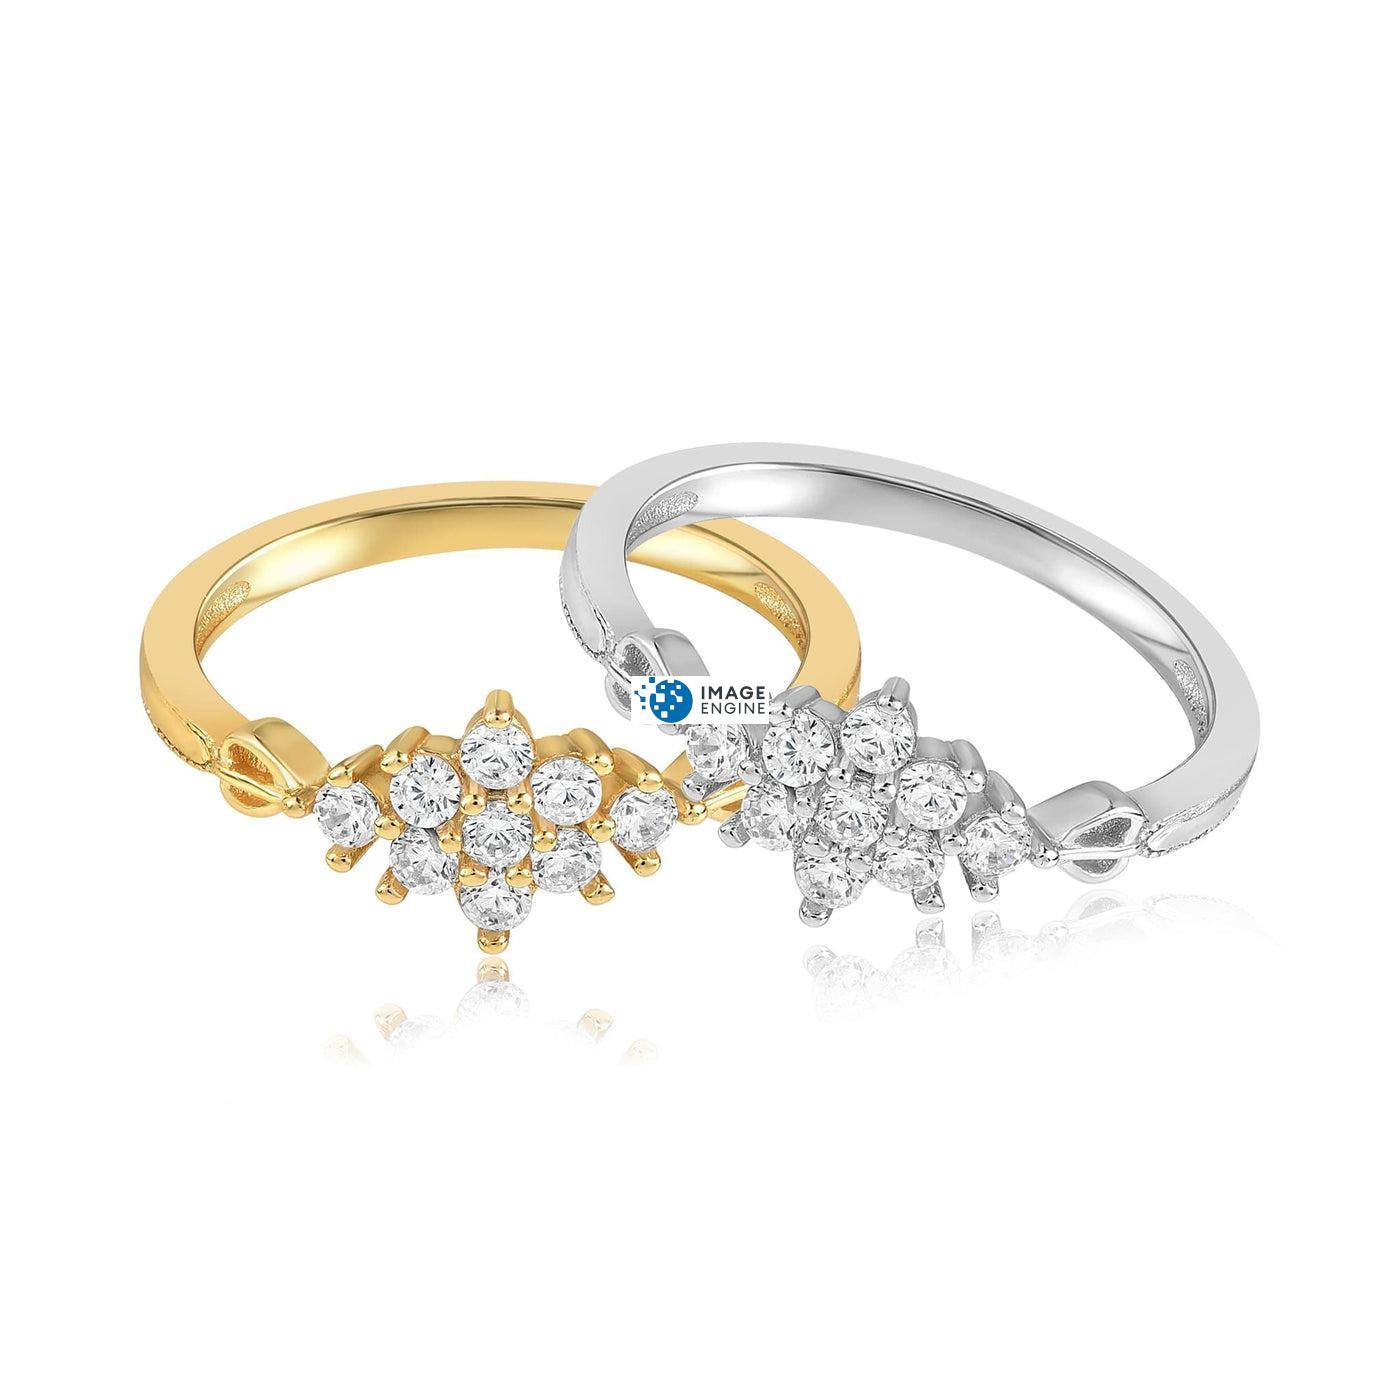 Sarah Snowflake Dainty Ring - Front View Side by Side - 18K Yellow Gold Vermeil and 925 Sterling Silver